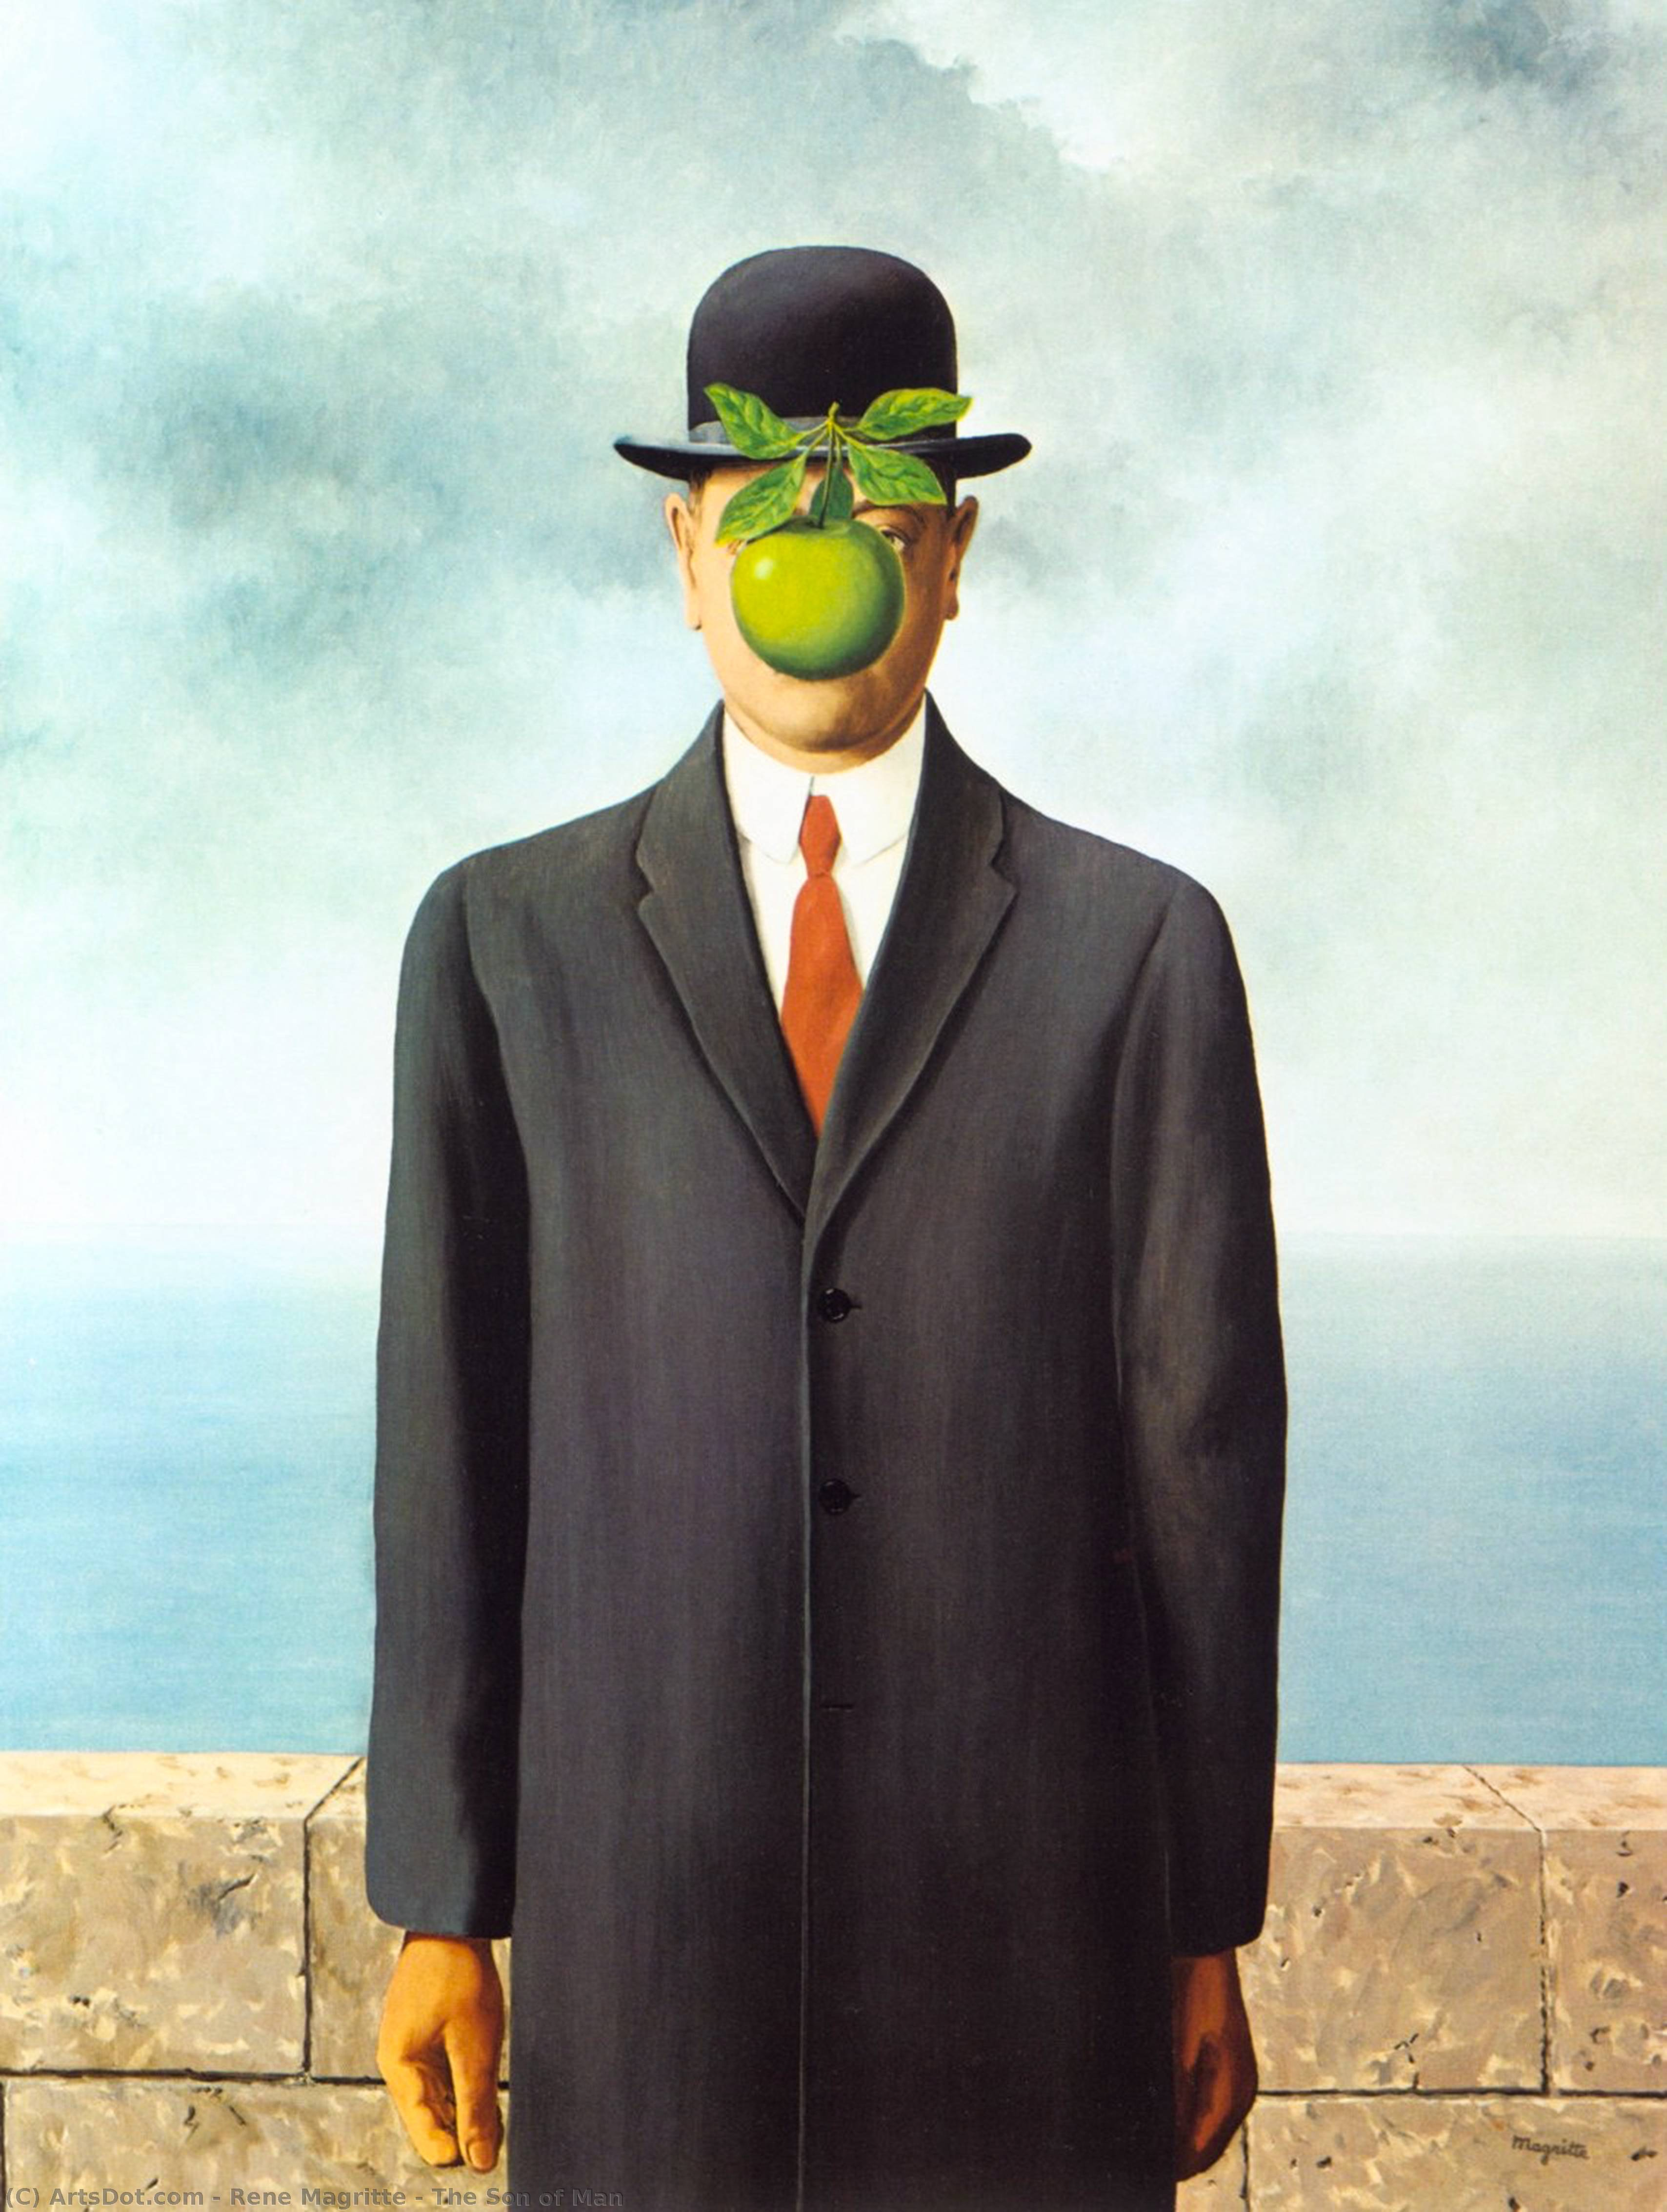 The Son of Man, Oil On Canvas by Rene Magritte (1898-1967, Belgium)